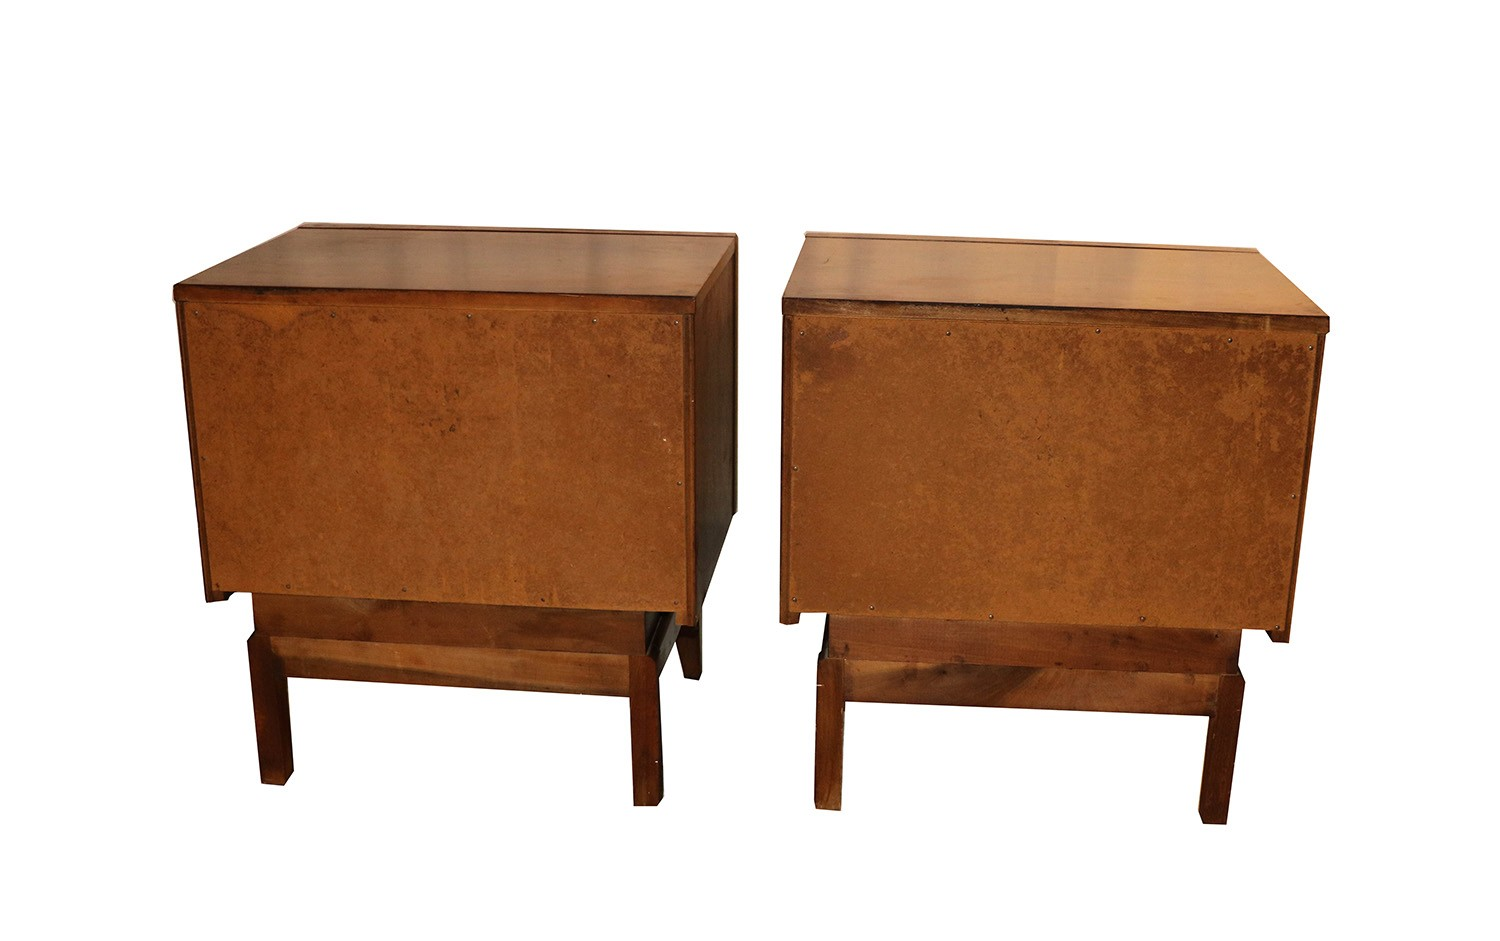 United mid century modern diamond front nightstands kagan for Mid century style furniture